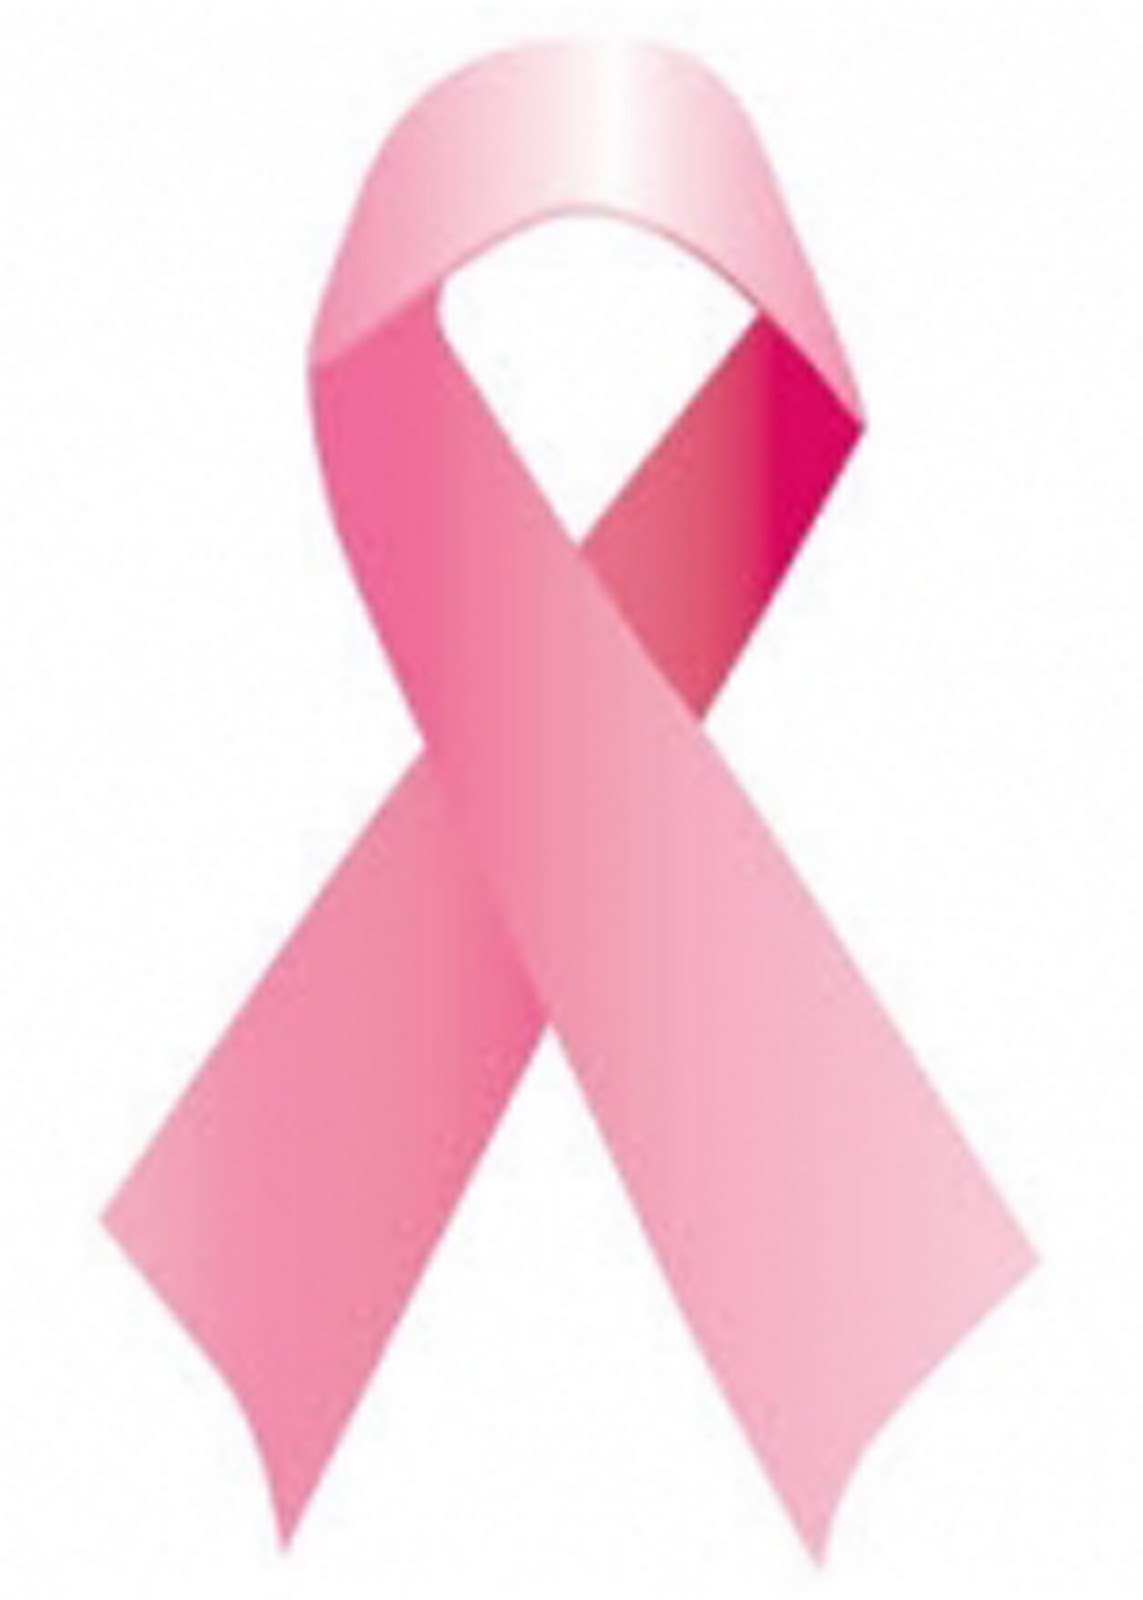 picture of a breast cancer ribbon jpg 1200x900